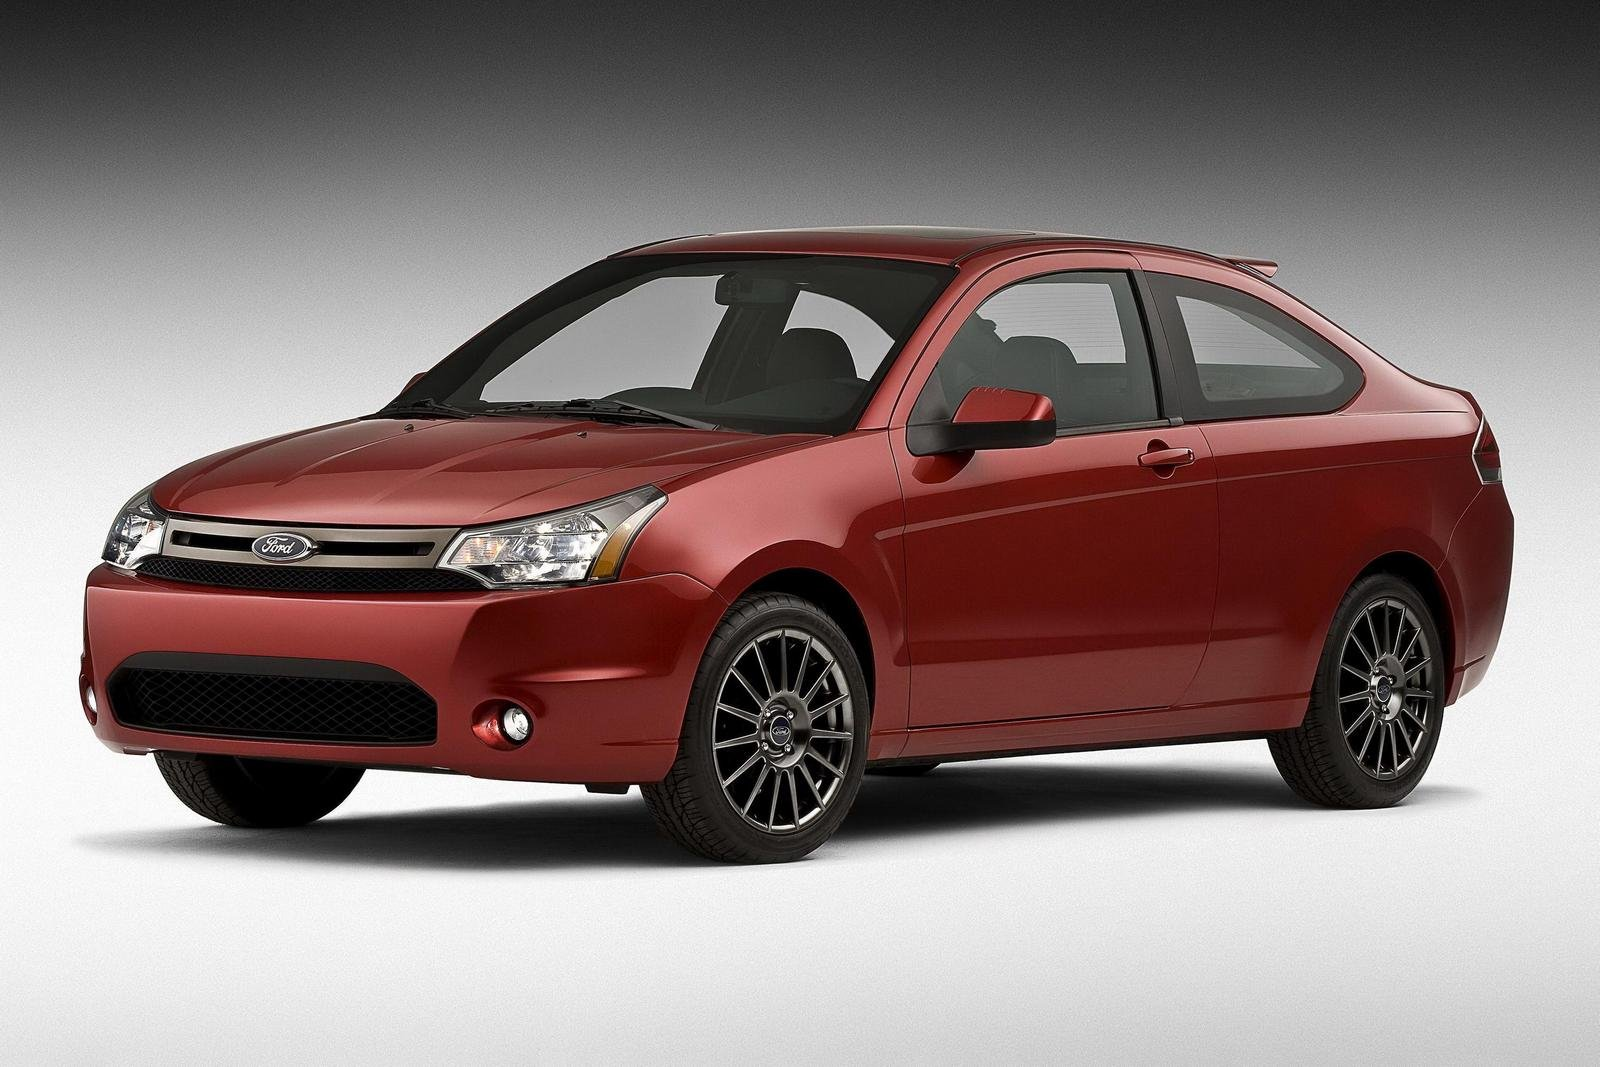 2010 ford focus coupe review top speed. Black Bedroom Furniture Sets. Home Design Ideas